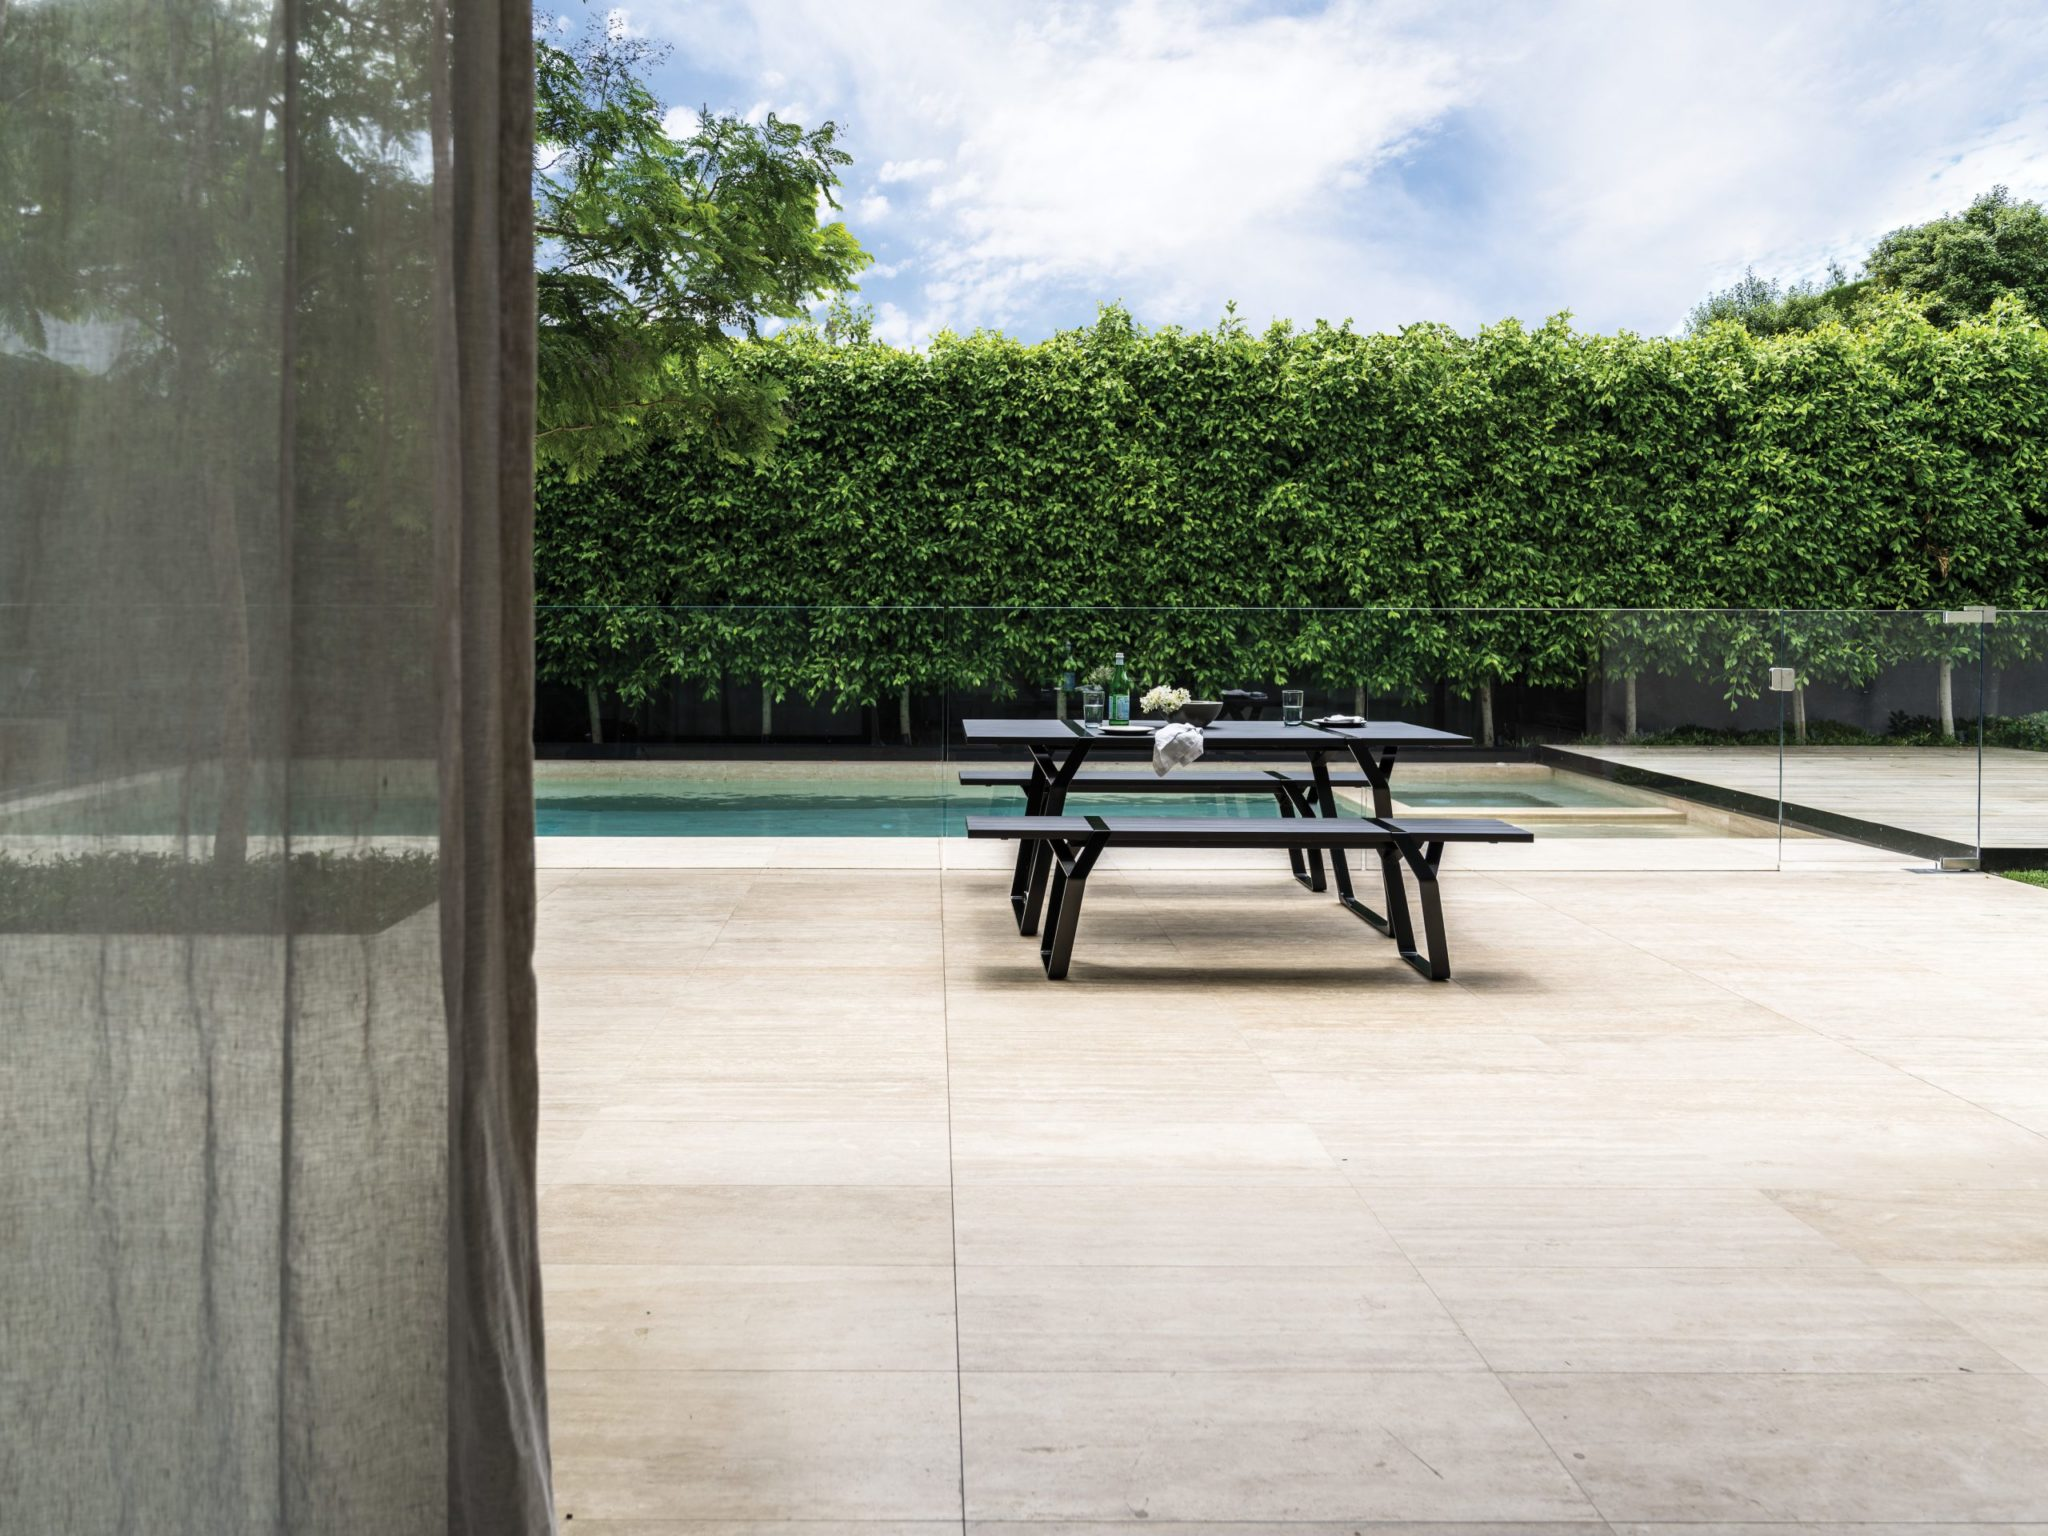 Sophisticated and sturdy, the Flint Bench Seat designed by Ross Gardam, is a sleek outdoor bench seat with an elegant profile.